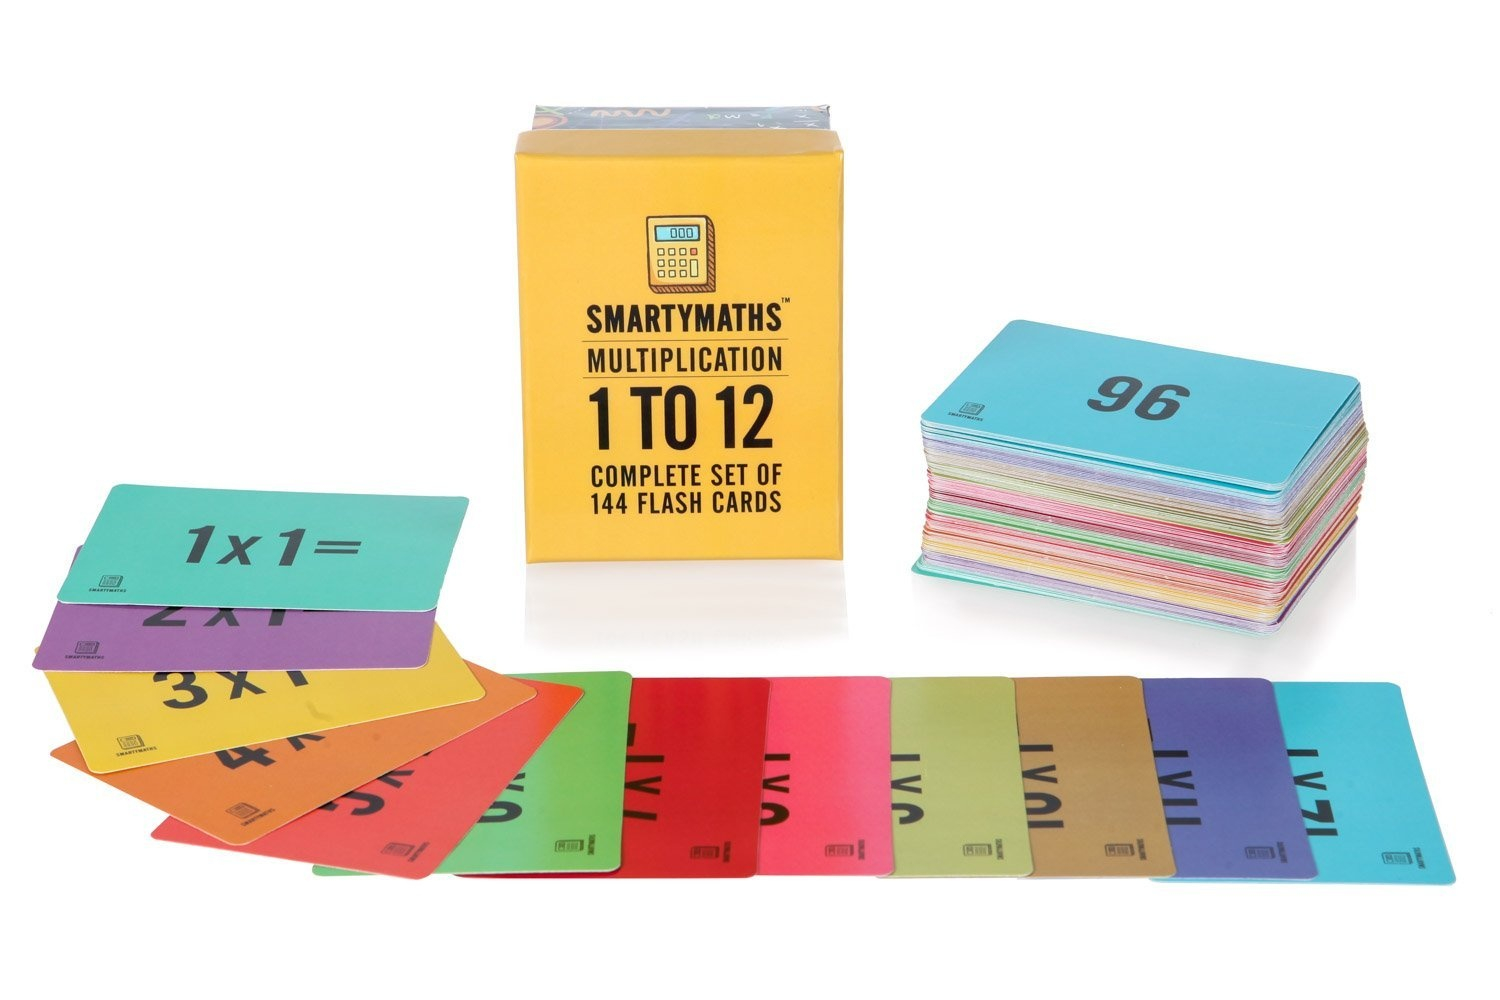 Smartymaths Multiplication Flash Cards, 1-12 All Facts-144